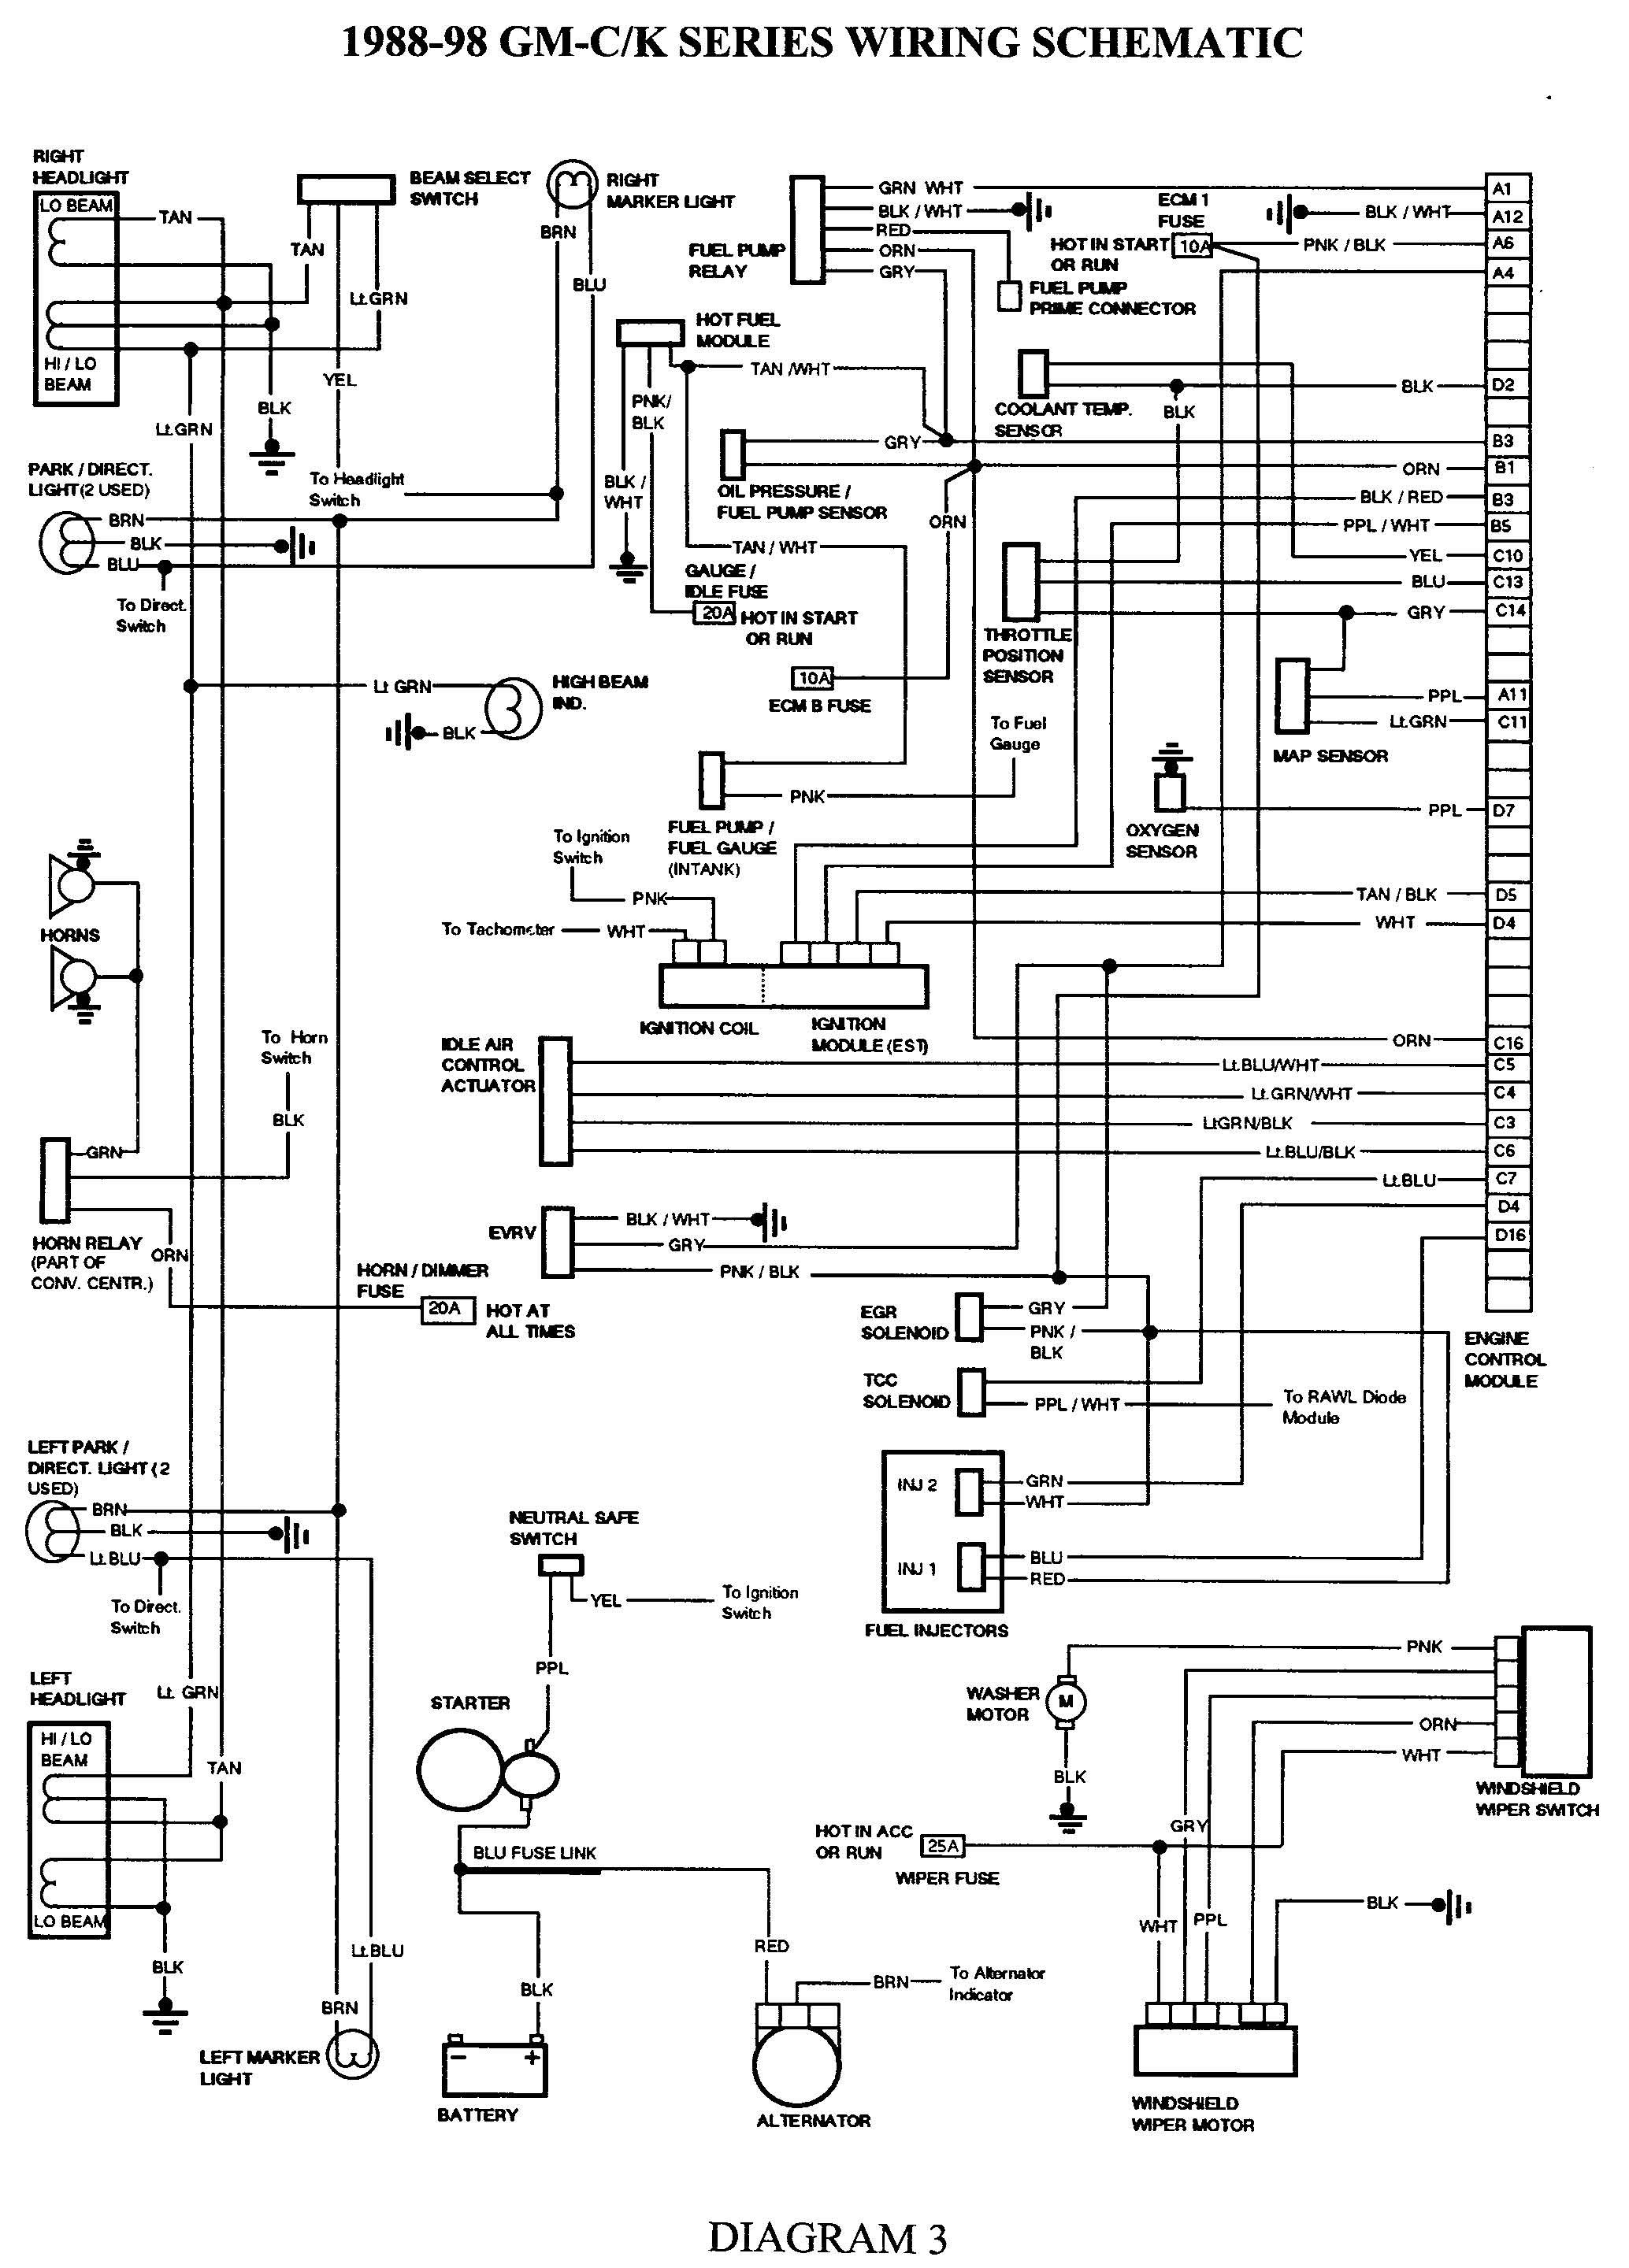 radio wiring diagram gmc wiring diagram gmc gmc truck wiring diagrams on gm wiring harness diagram 88 ...